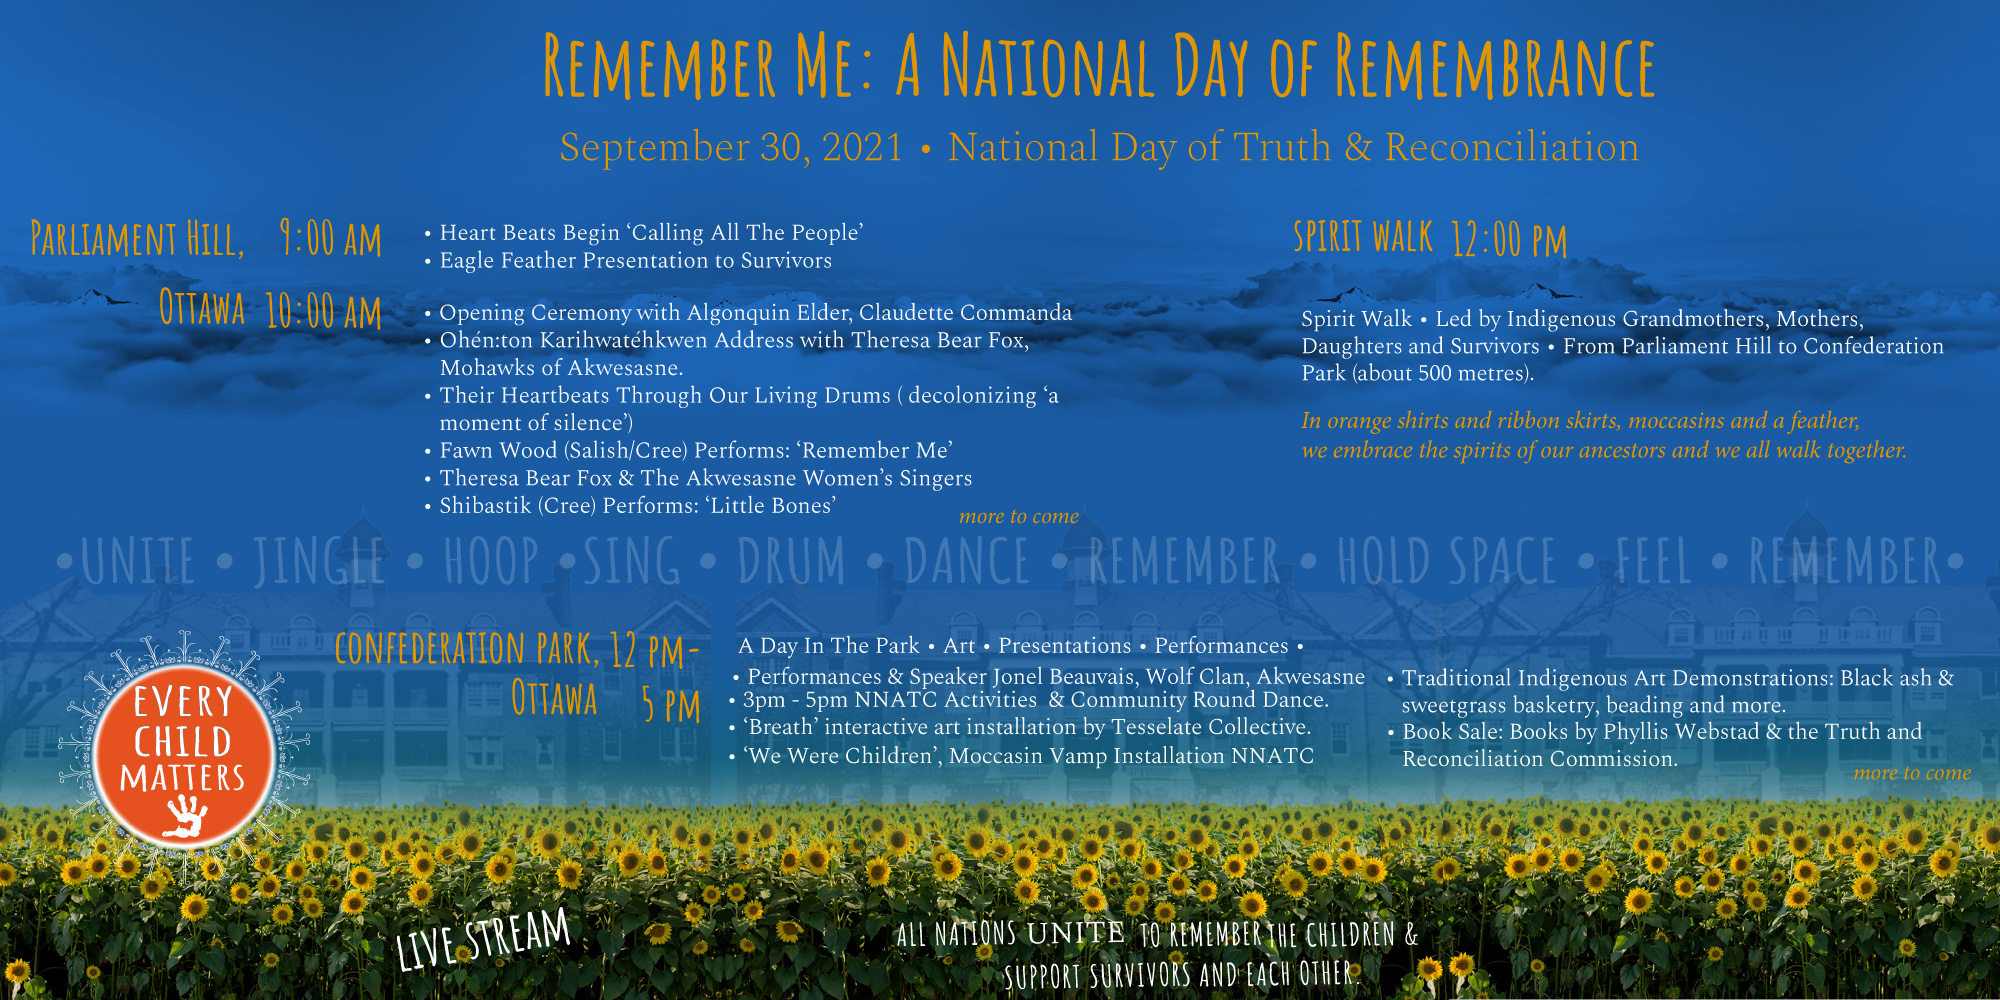 remember me, september 30, orange shirt day, ottawa, pass the feather, indigenous arts collective of canada, residential school, graves, remembrance day, sixties scoop, flag, fundraising, awareness,truth and reconciliation